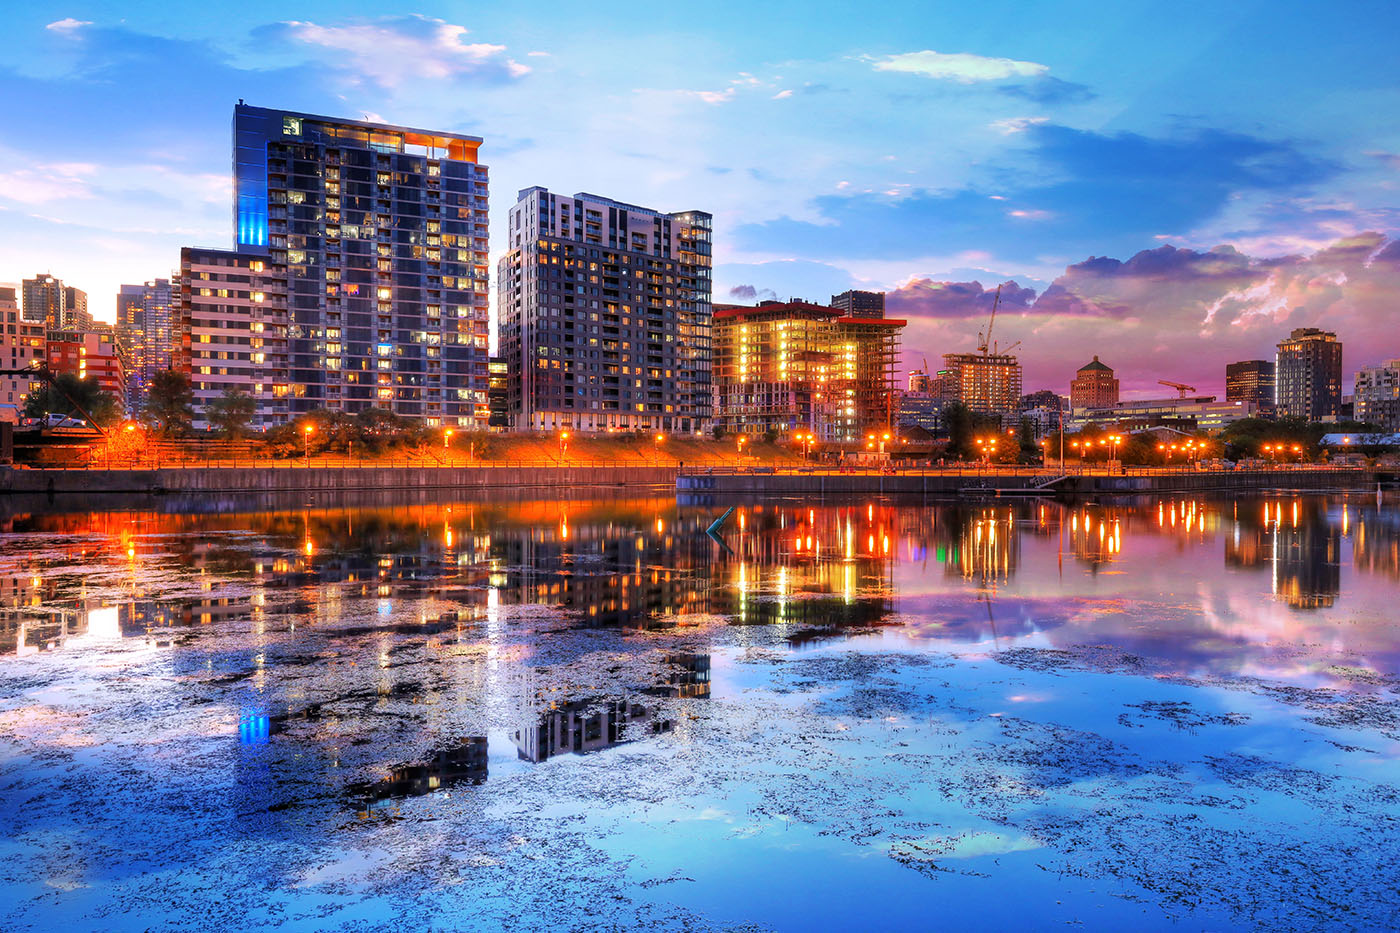 2020 Downtown Montreal City Water Reflection at Sunset - Stock Photos, Pictures & Images